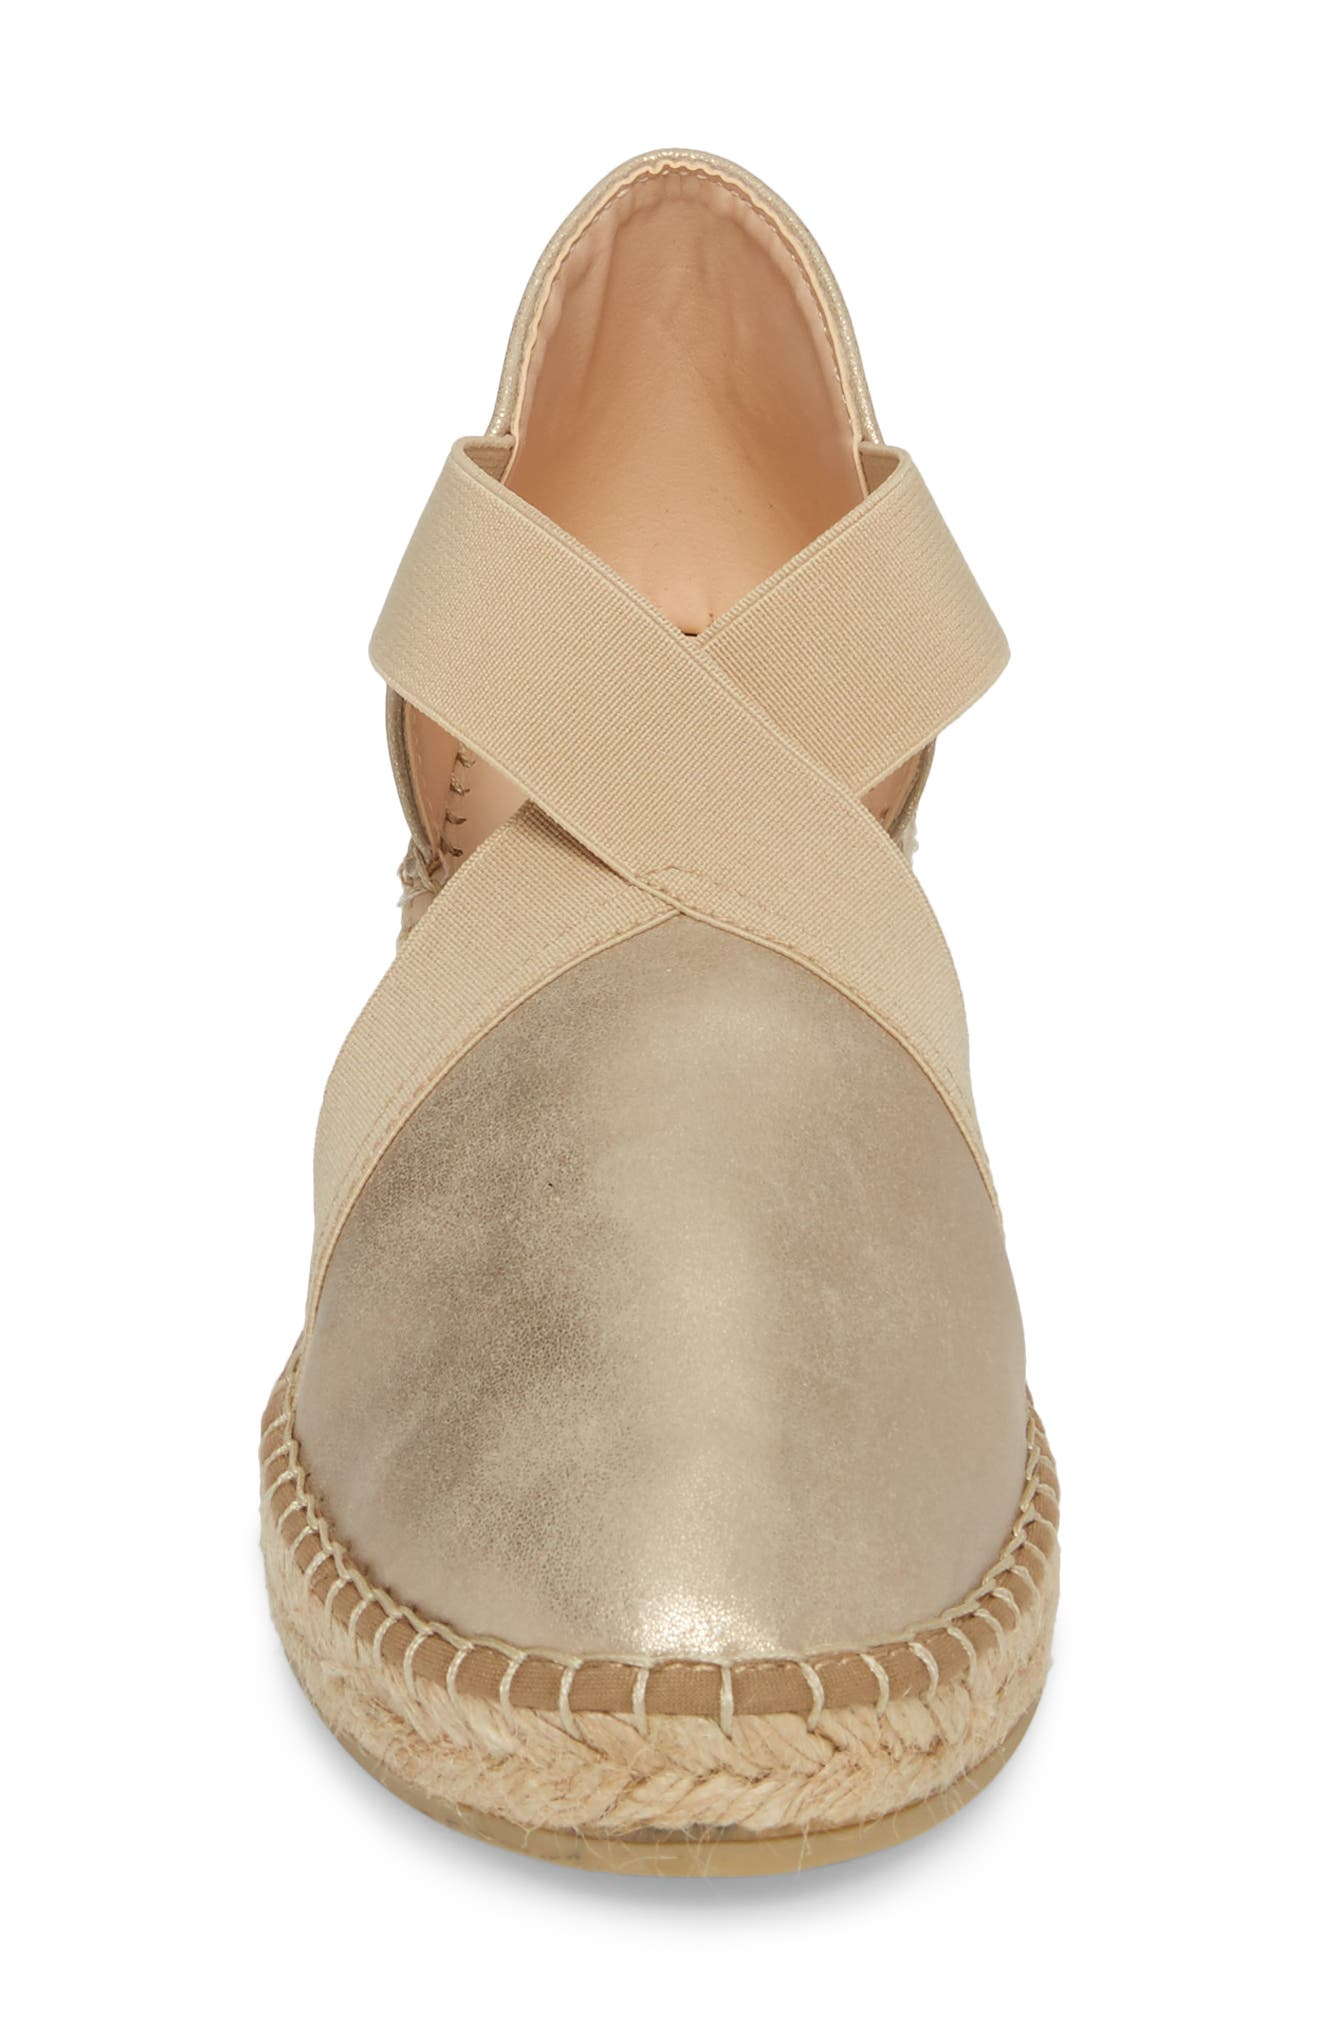 Monaco Espadrille Wedge,                             Alternate thumbnail 4, color,                             PEWTER LEATHER